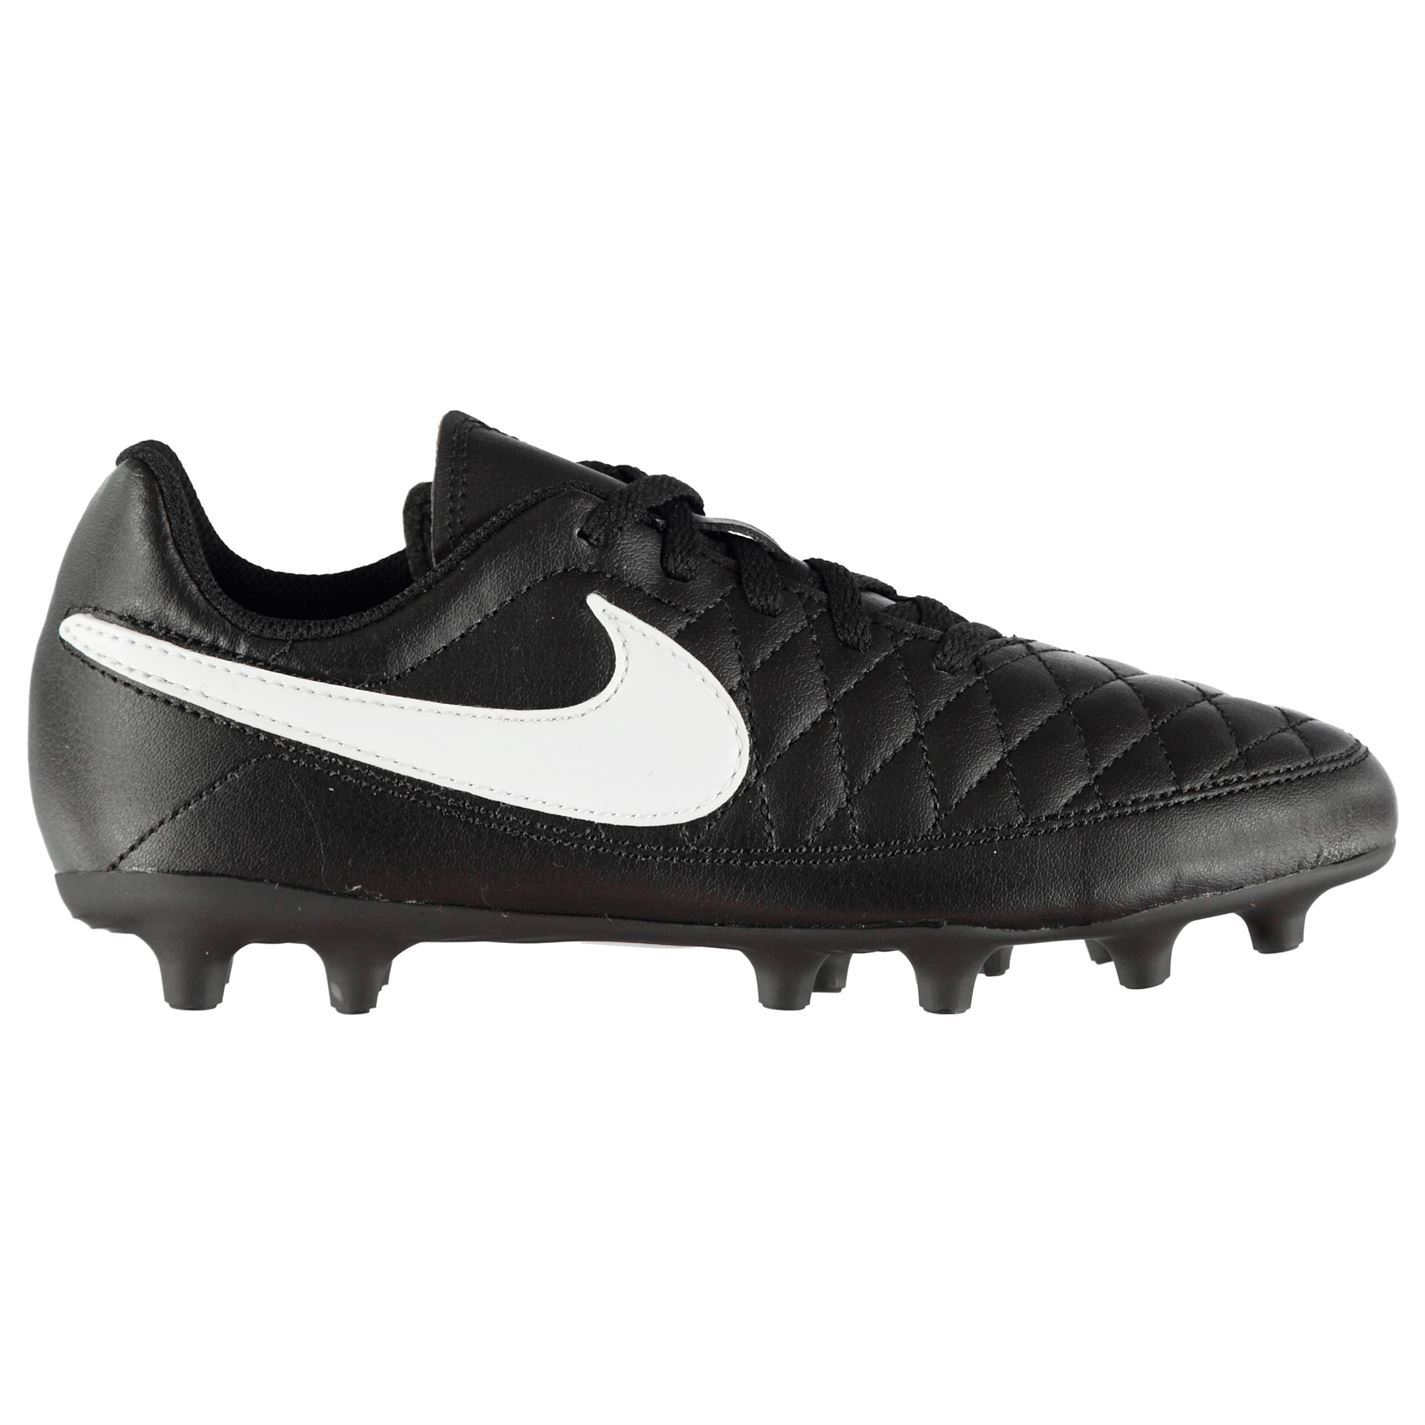 miniature 10 - Nike-majestry-FG-Firm-Ground-Chaussures-De-Football-Enfants-Football-Chaussures-Crampons